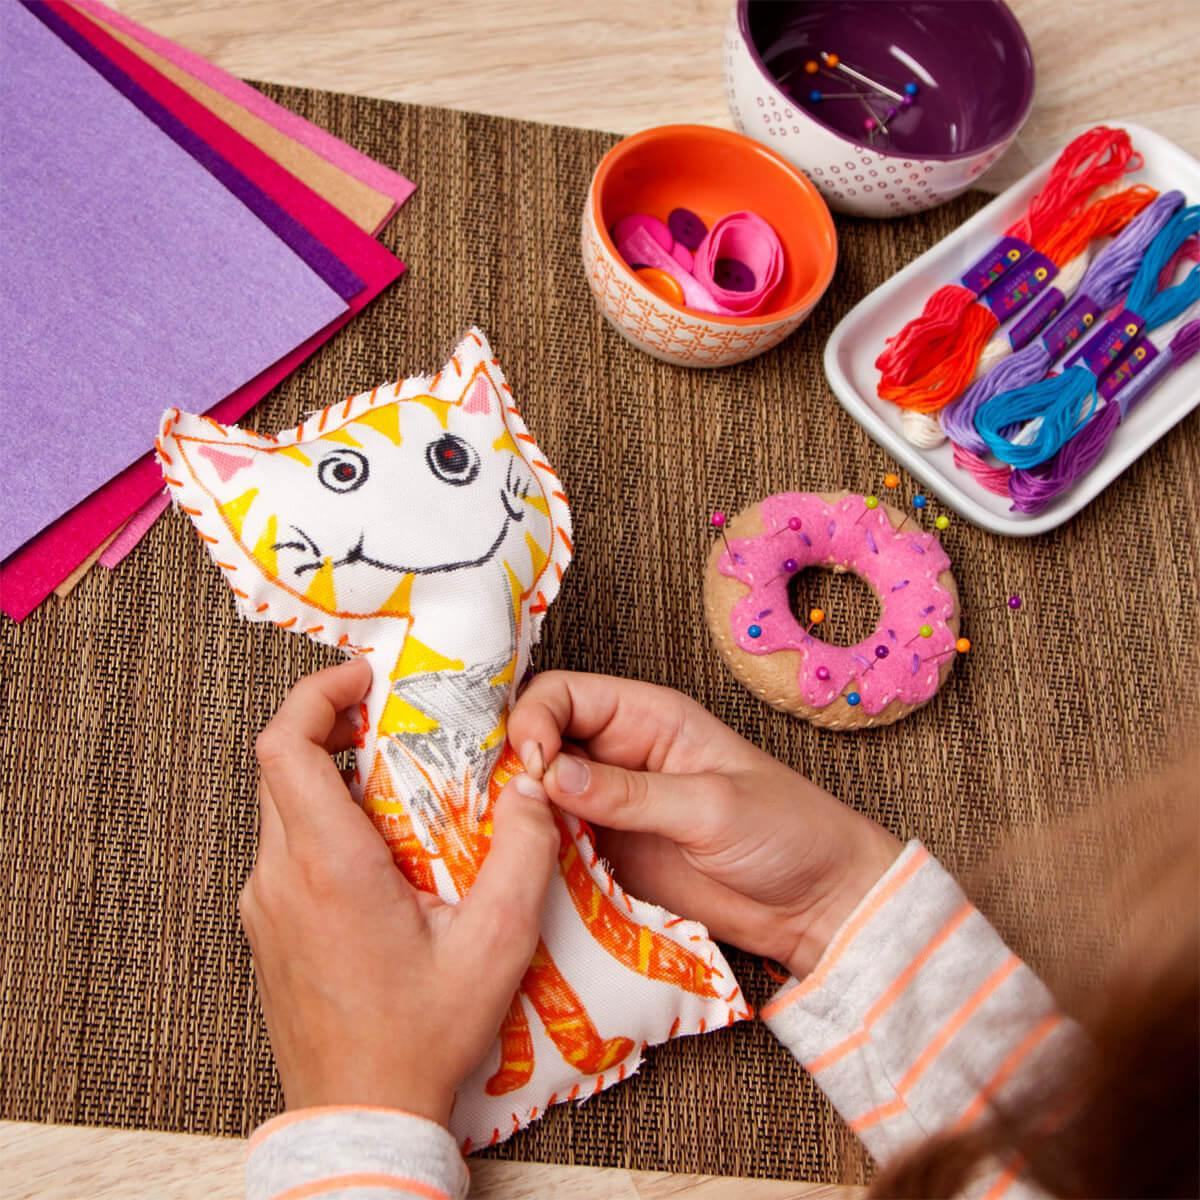 Learn how to sew crafts